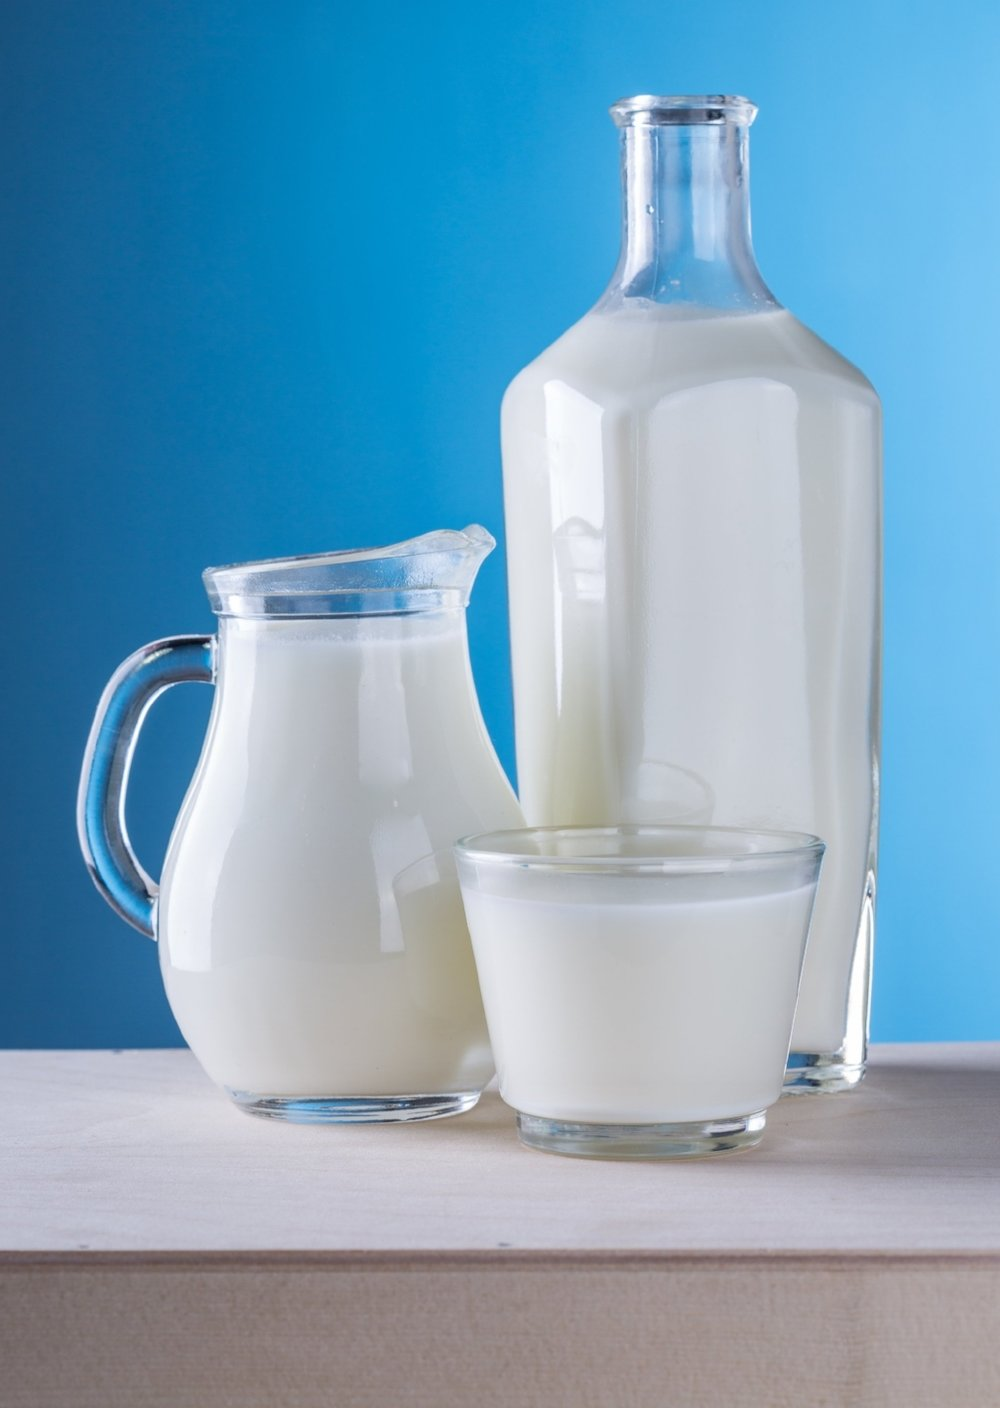 Dairy - If you tend to drink a lot of milk throughout the week, or have a large family, getting a gallon of milk is less expensive than getting multiple half gallons throughout the week and its saves you the extra trip to the store.